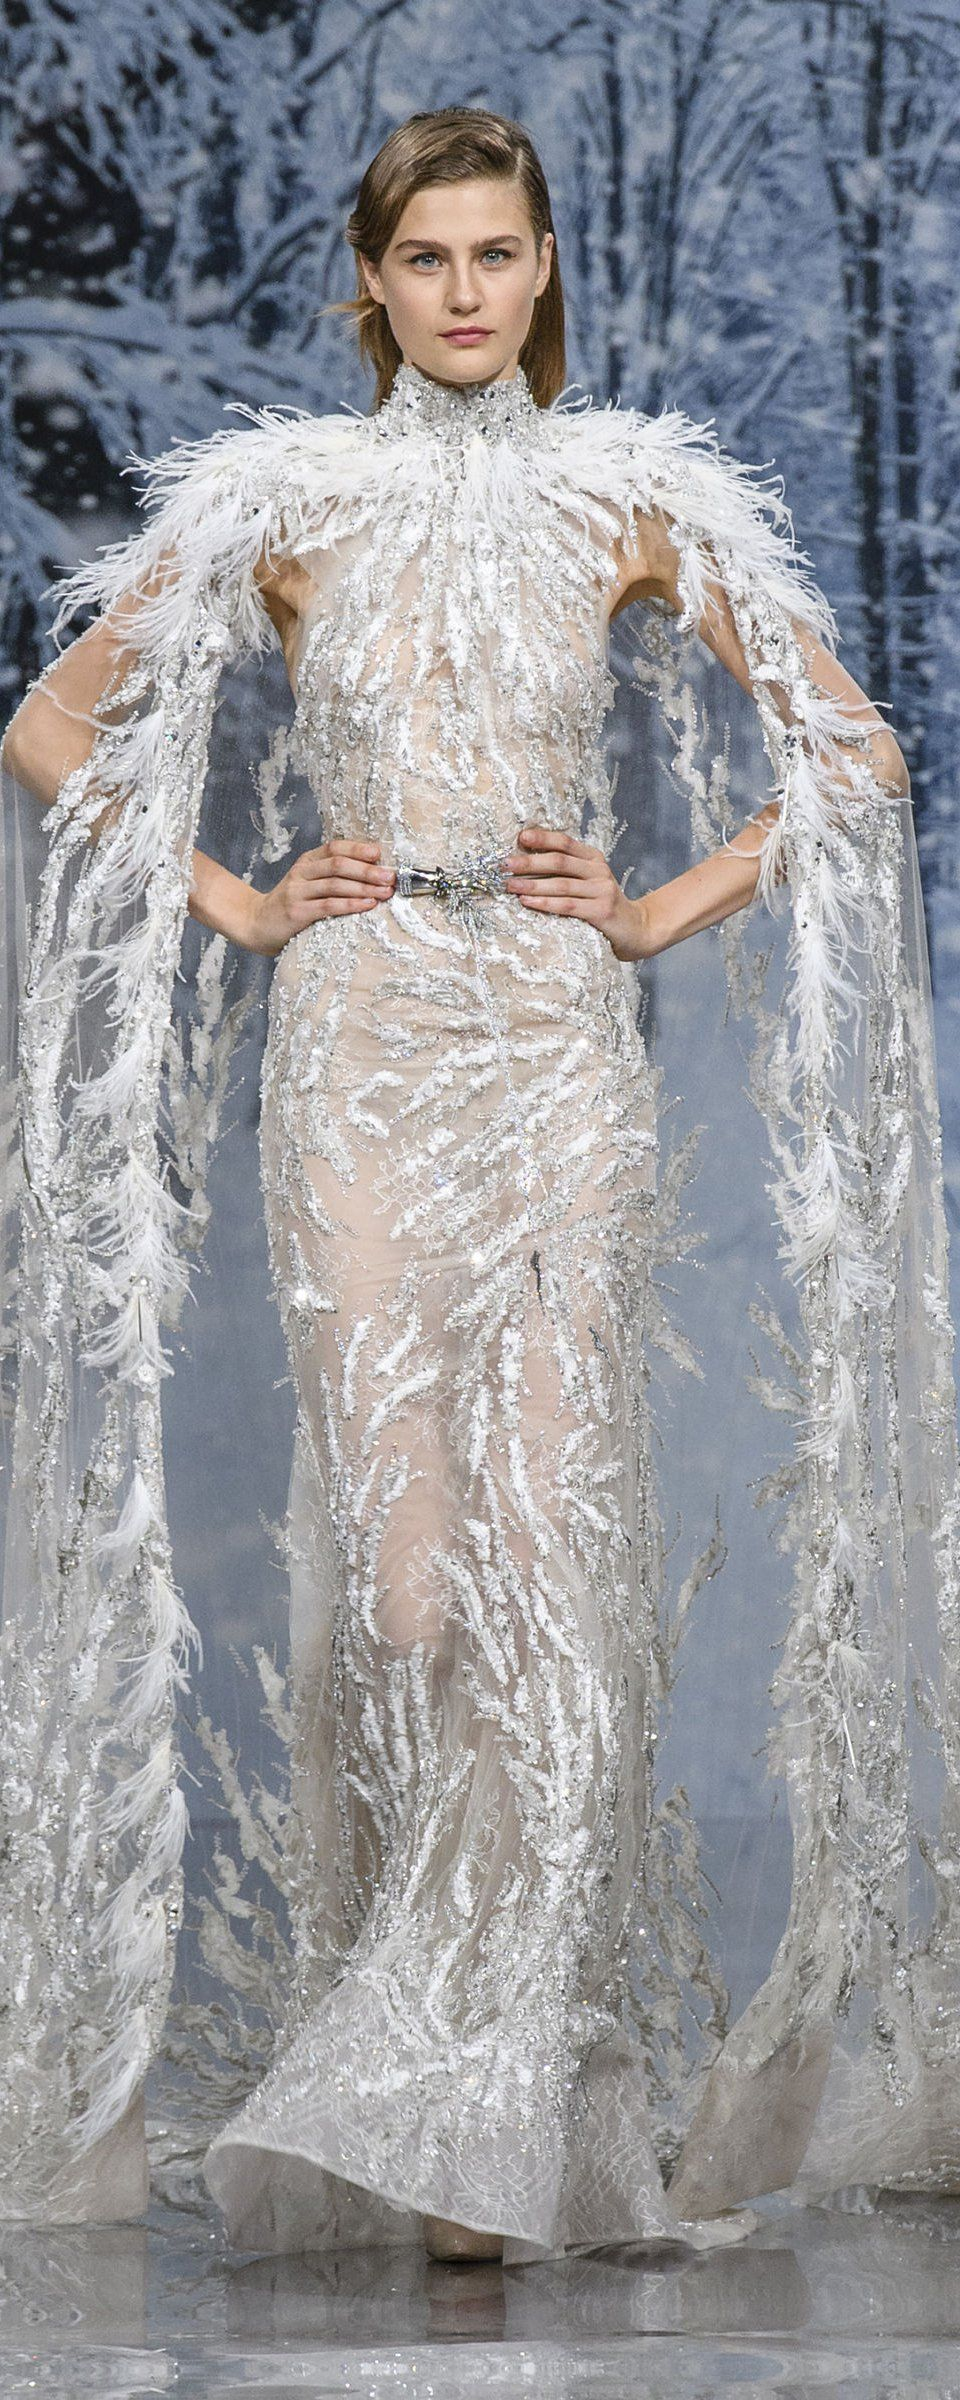 Ziad nakad fallwinter couture winter couture